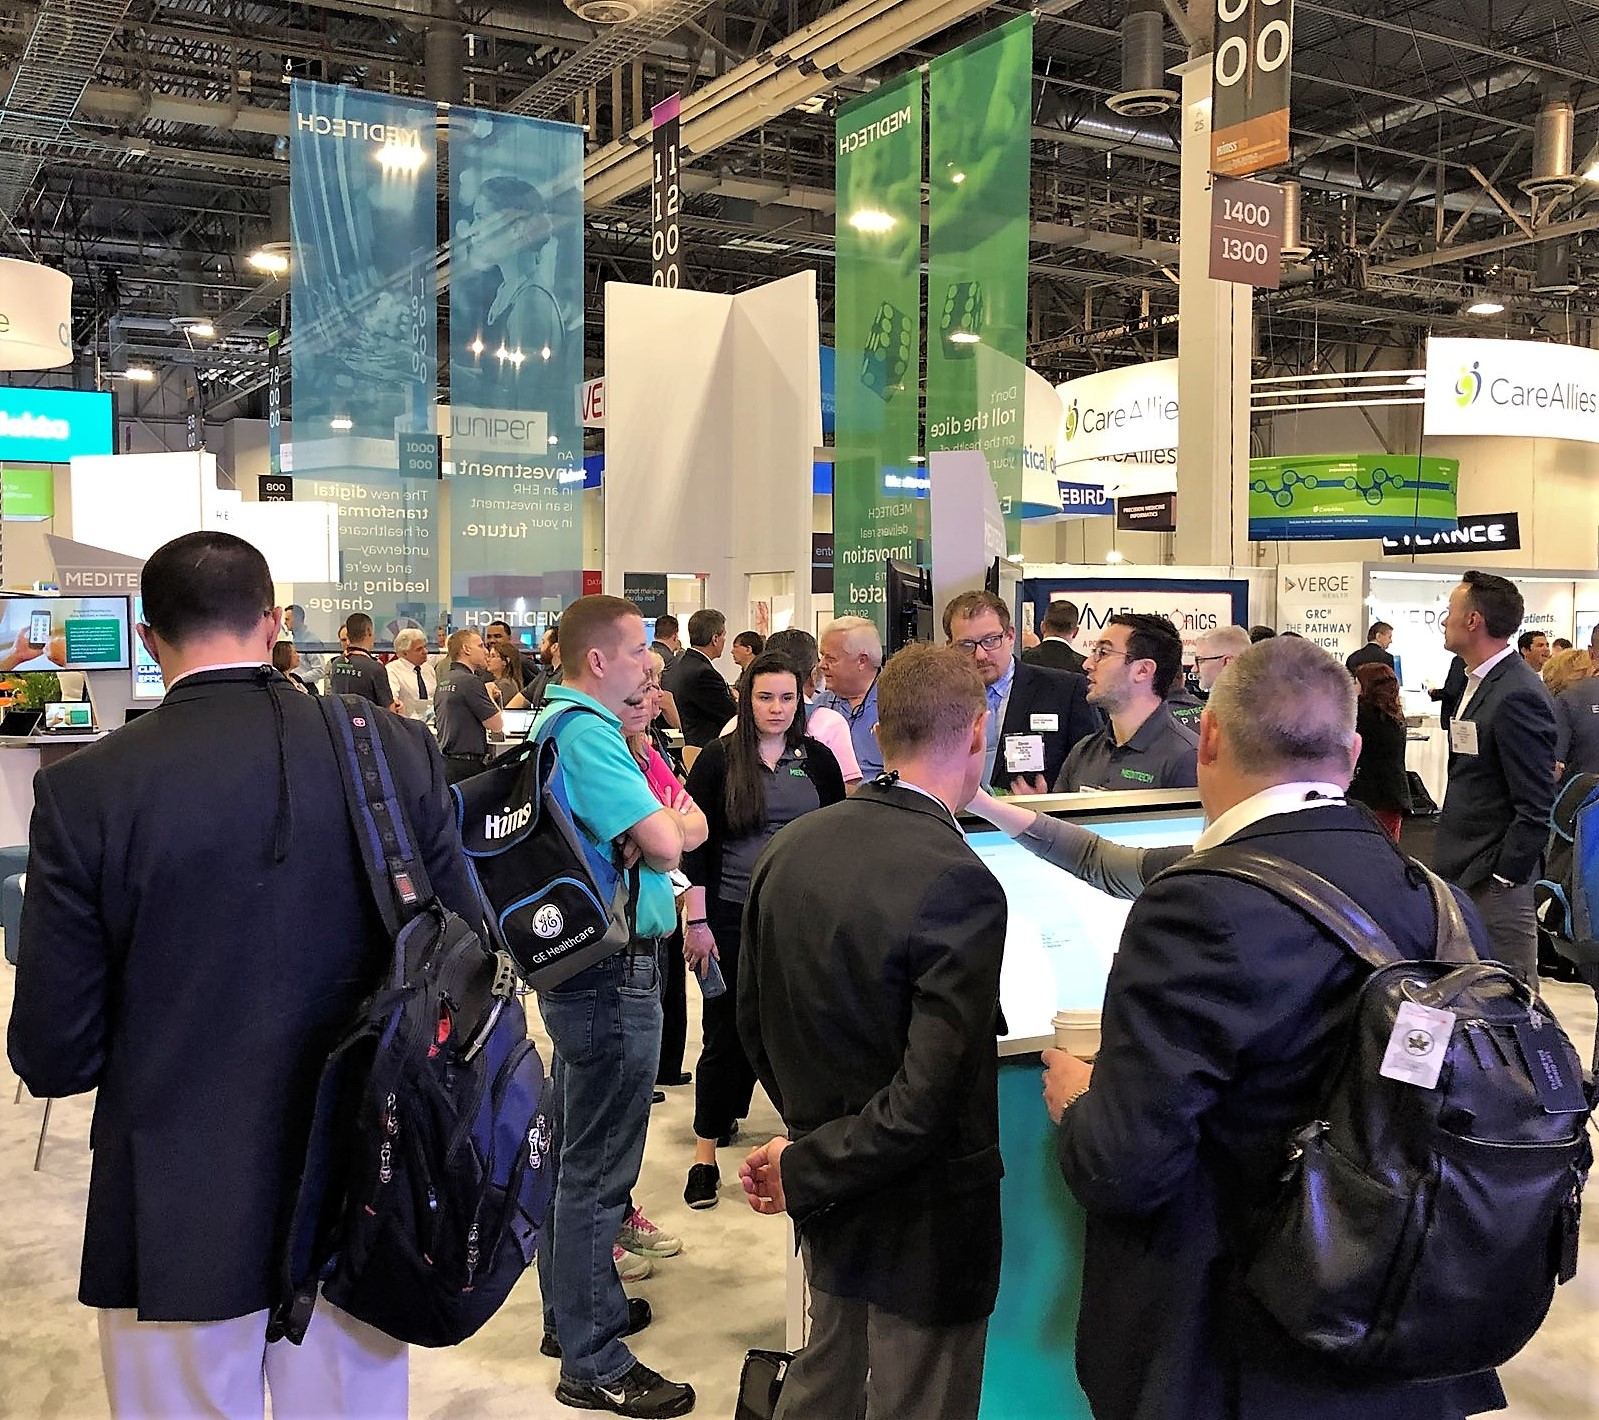 Attendees visiting the MEDITECH booth during HIMSS18 in Las Vegas in March.